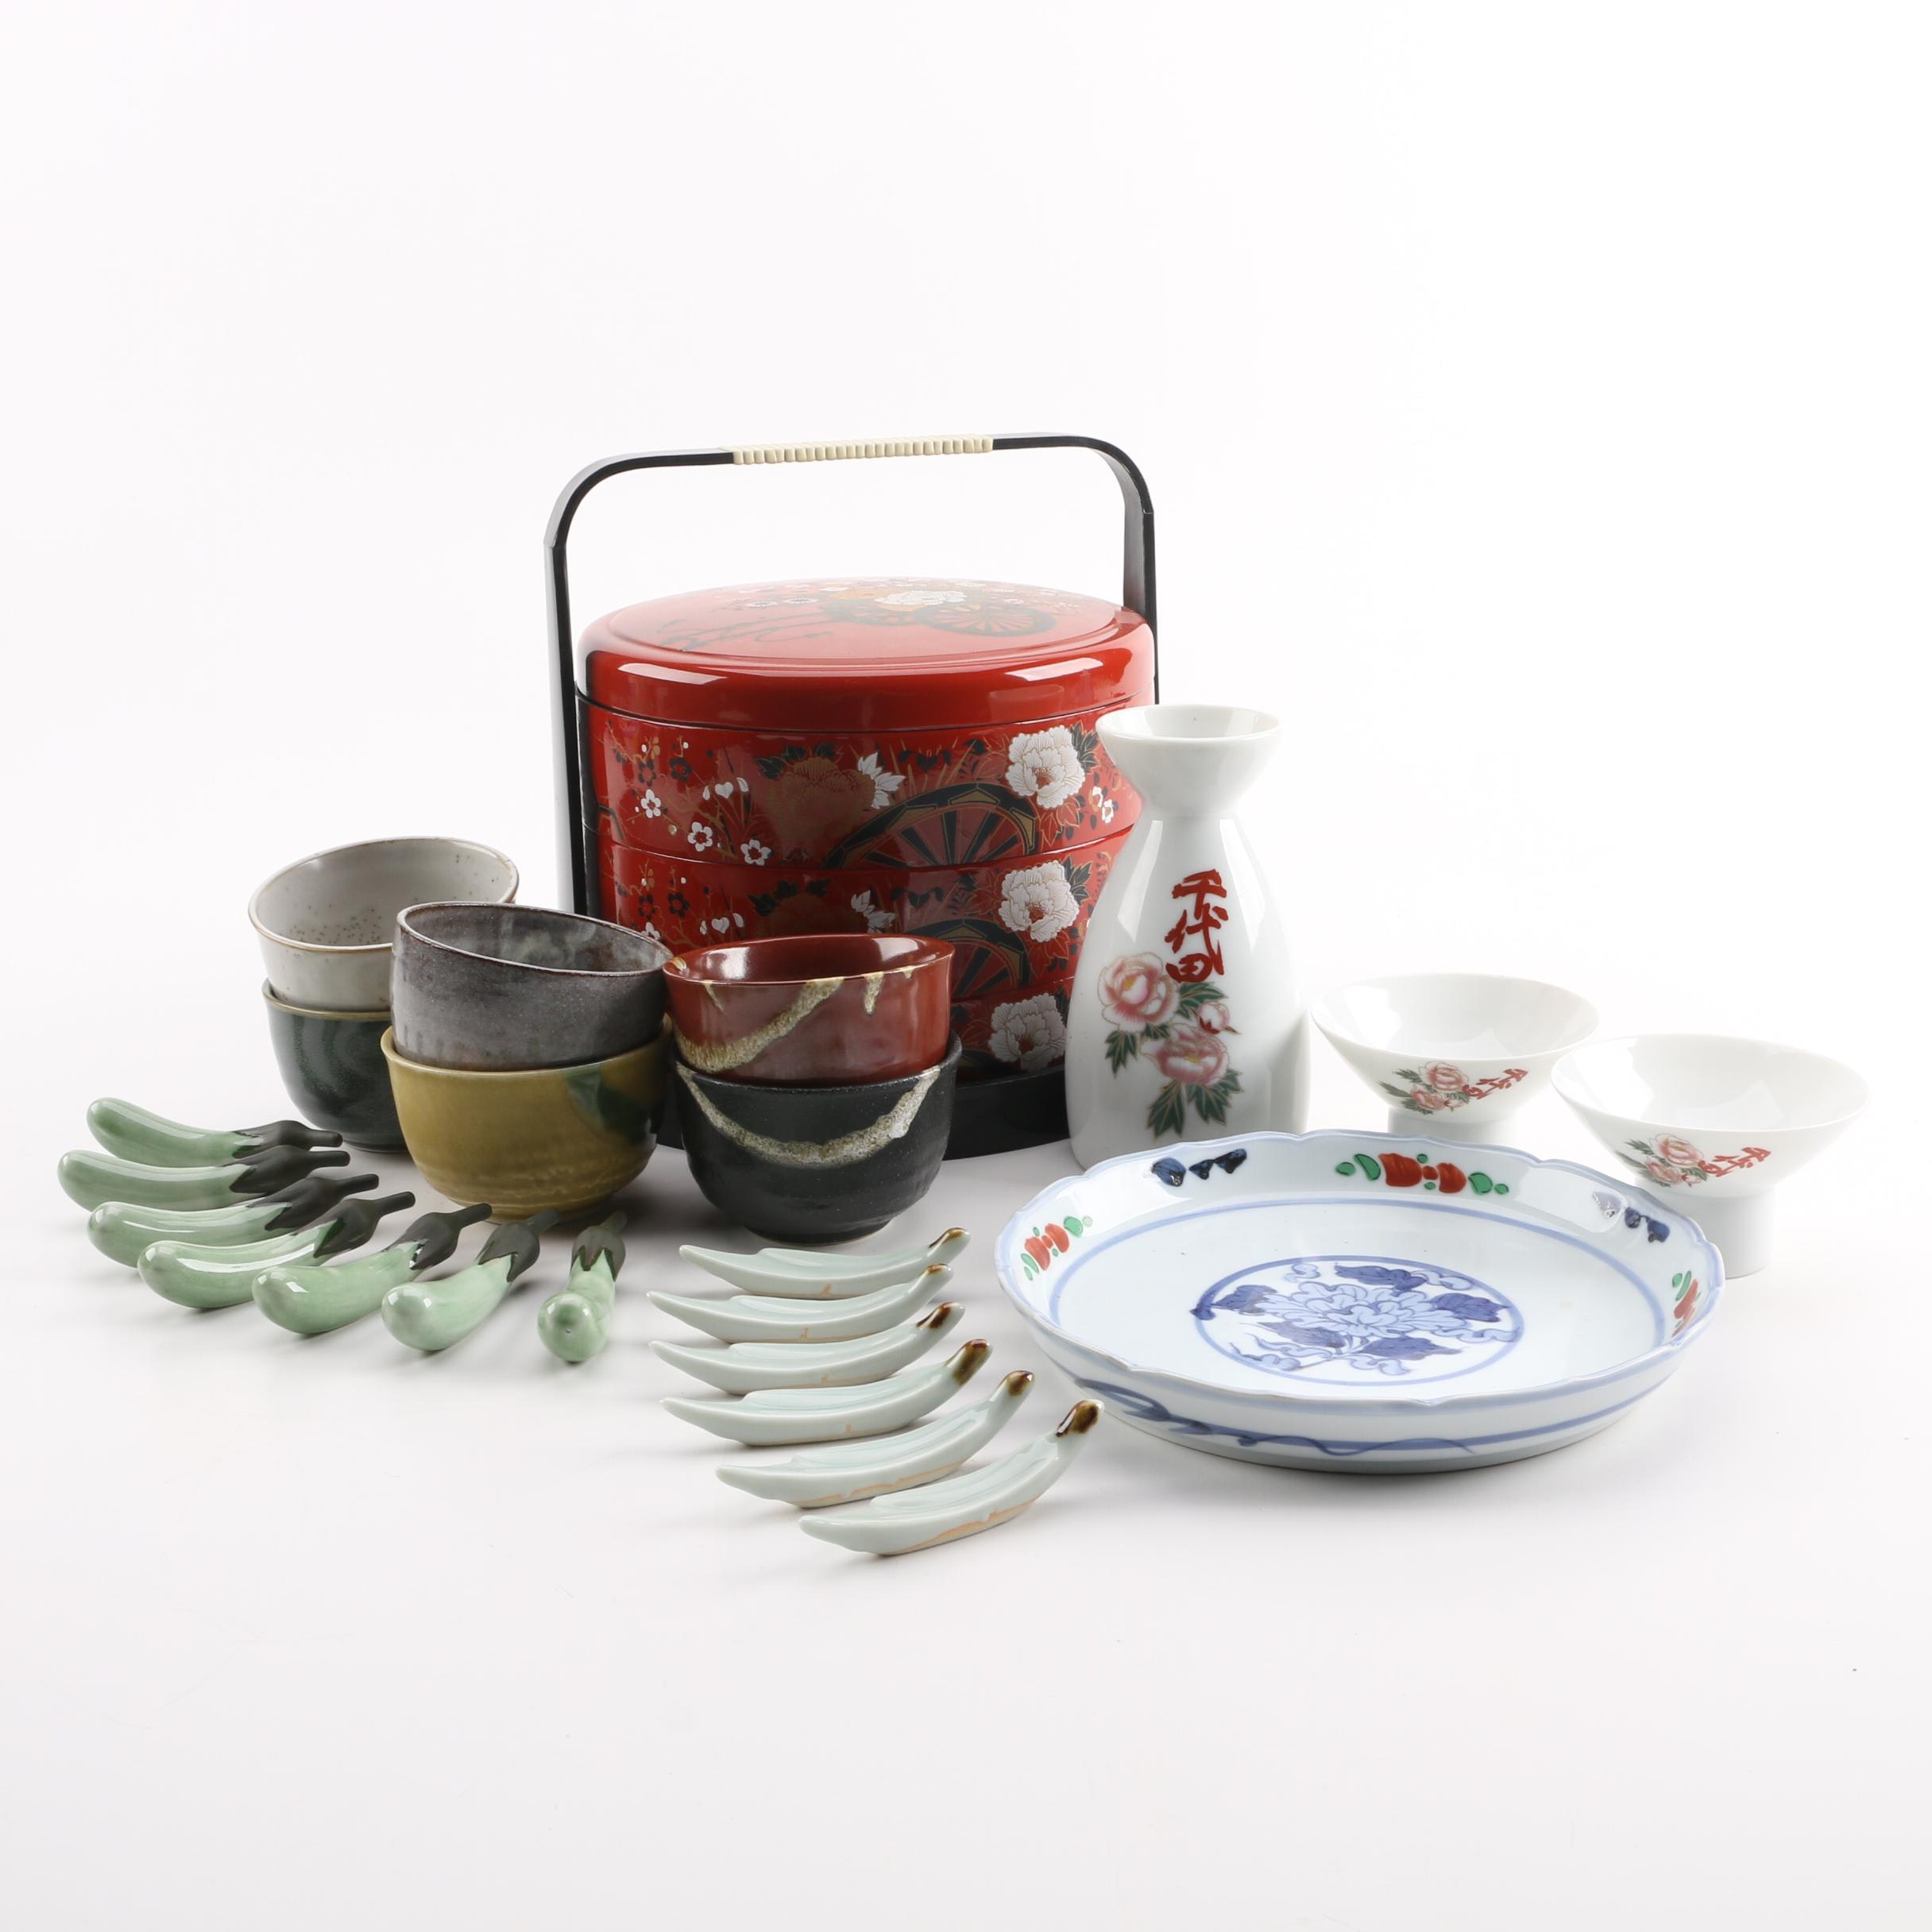 Vintage Lacquer Ware Tiffin and Other Asian Serveware